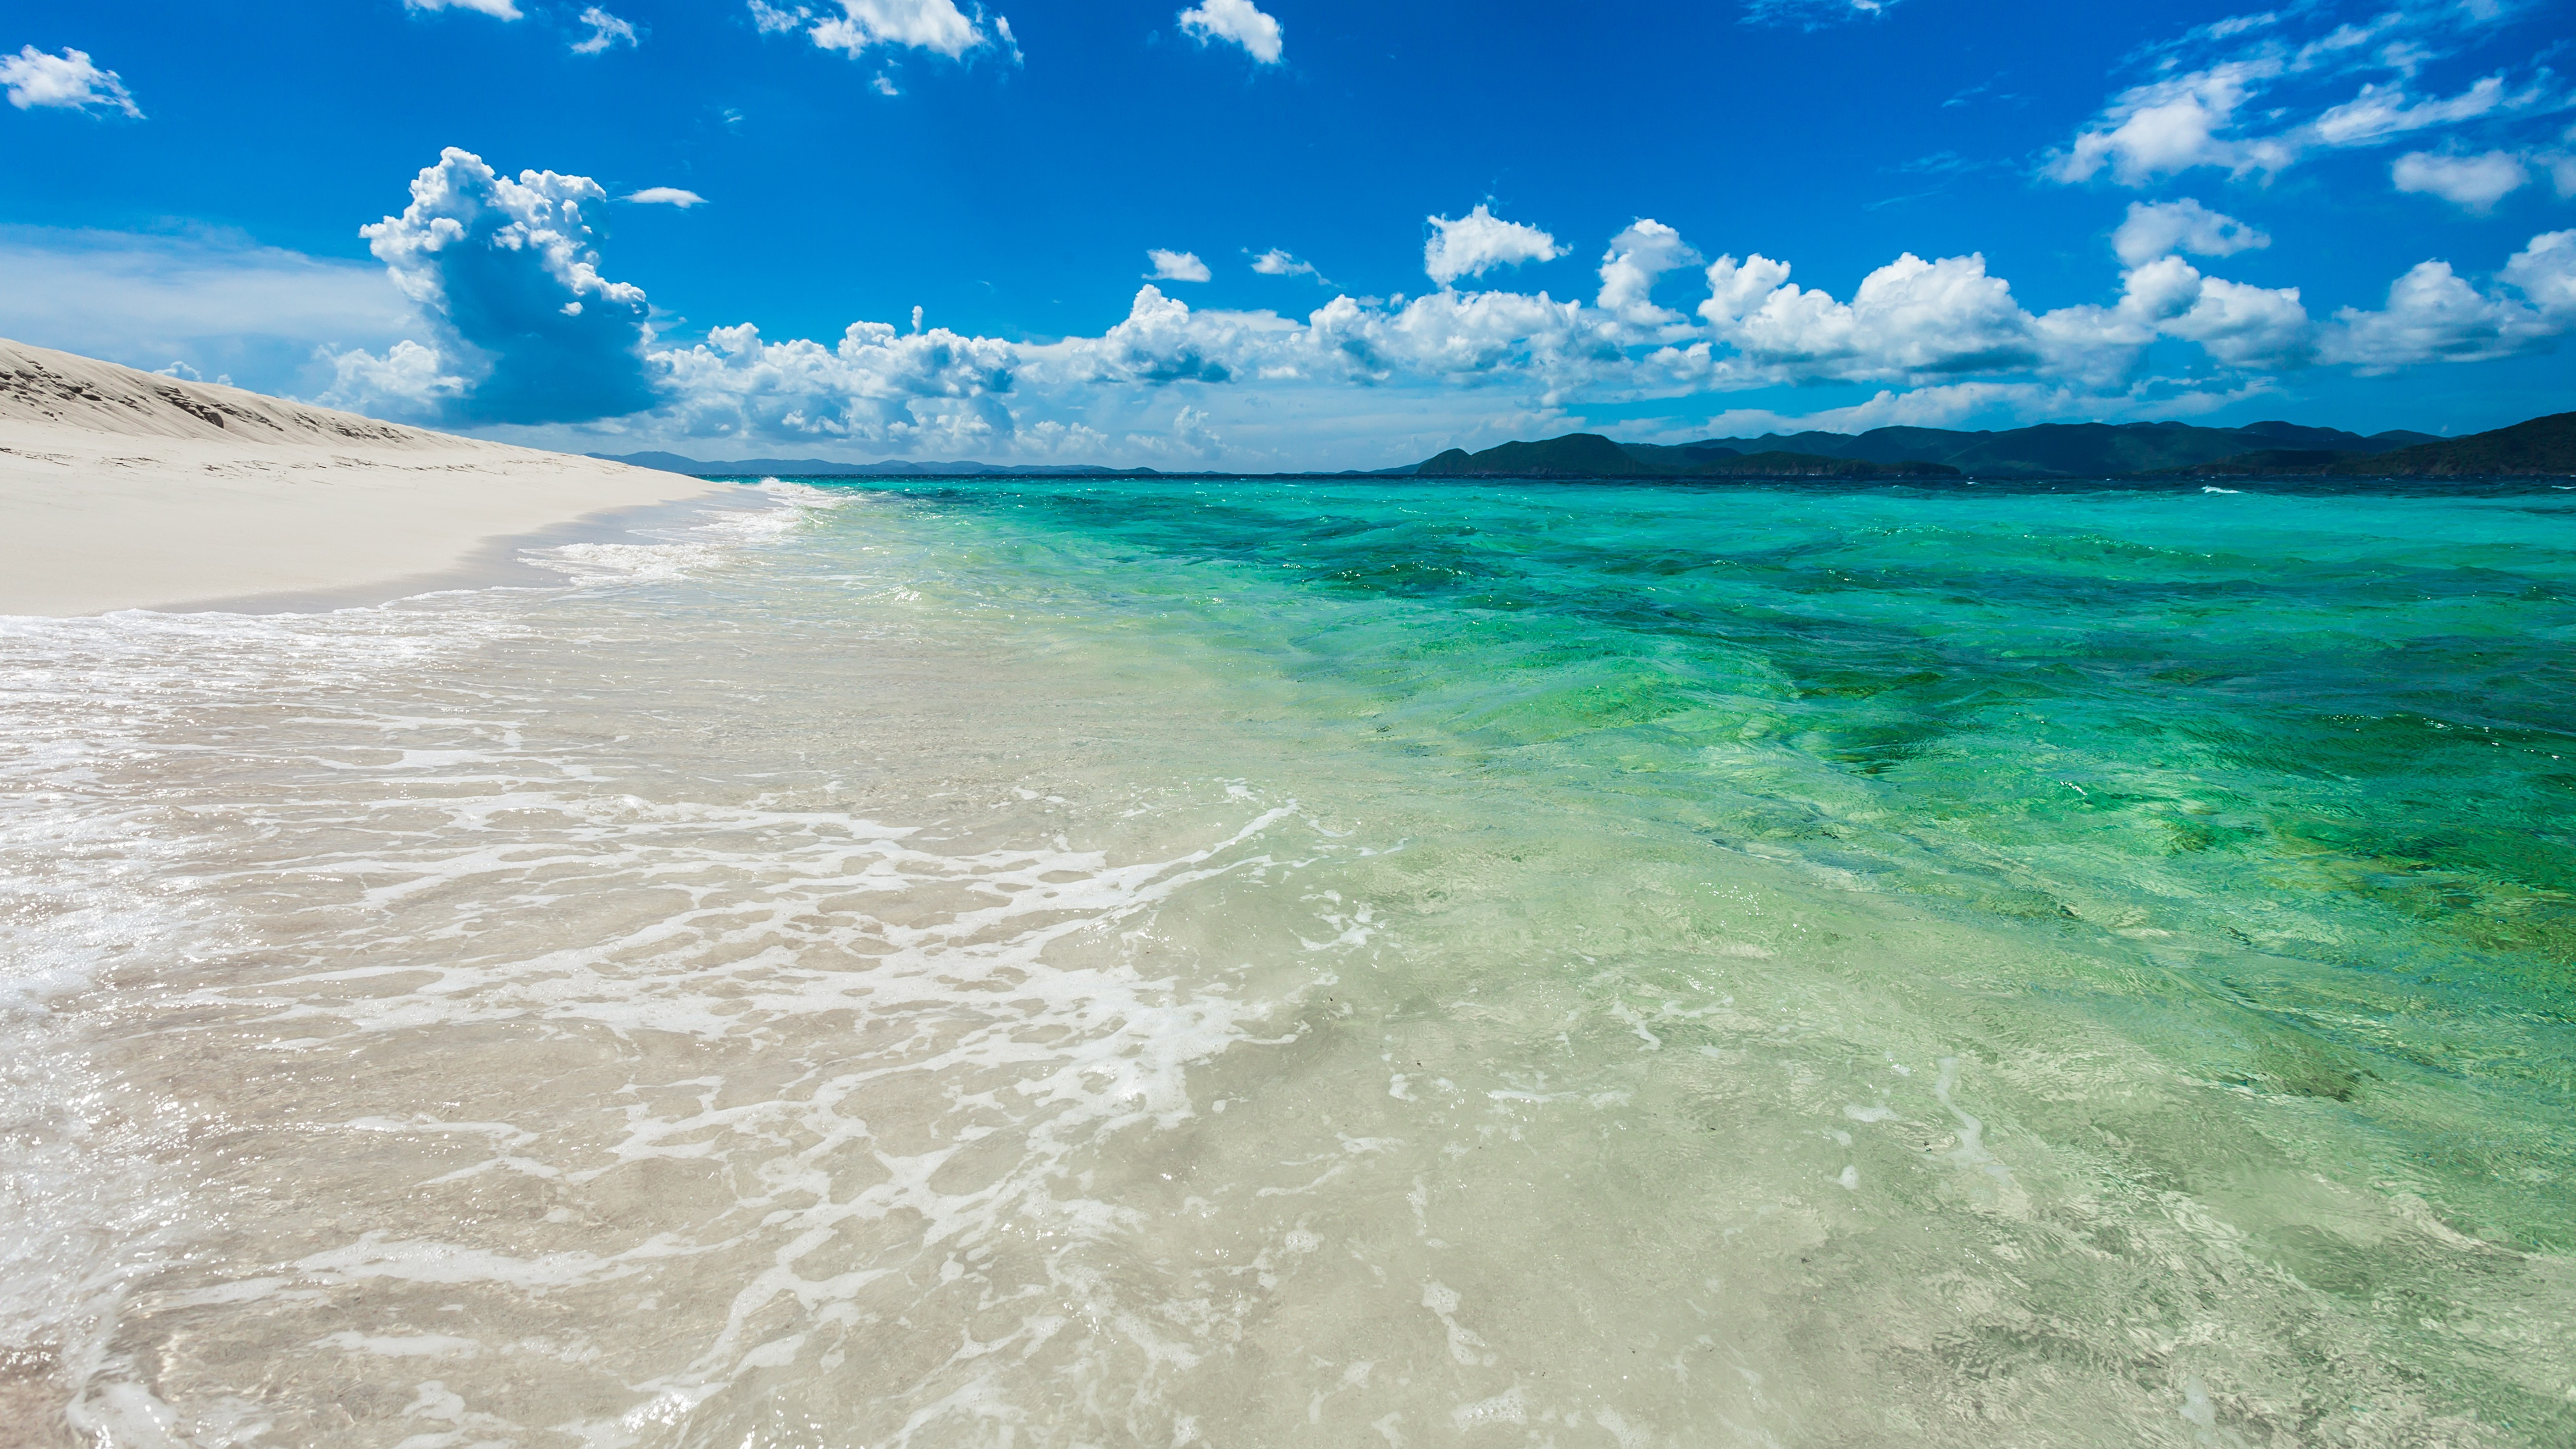 Turquoise Ocean 5k Retina Ultra HD Wallpaper and Background Image ...